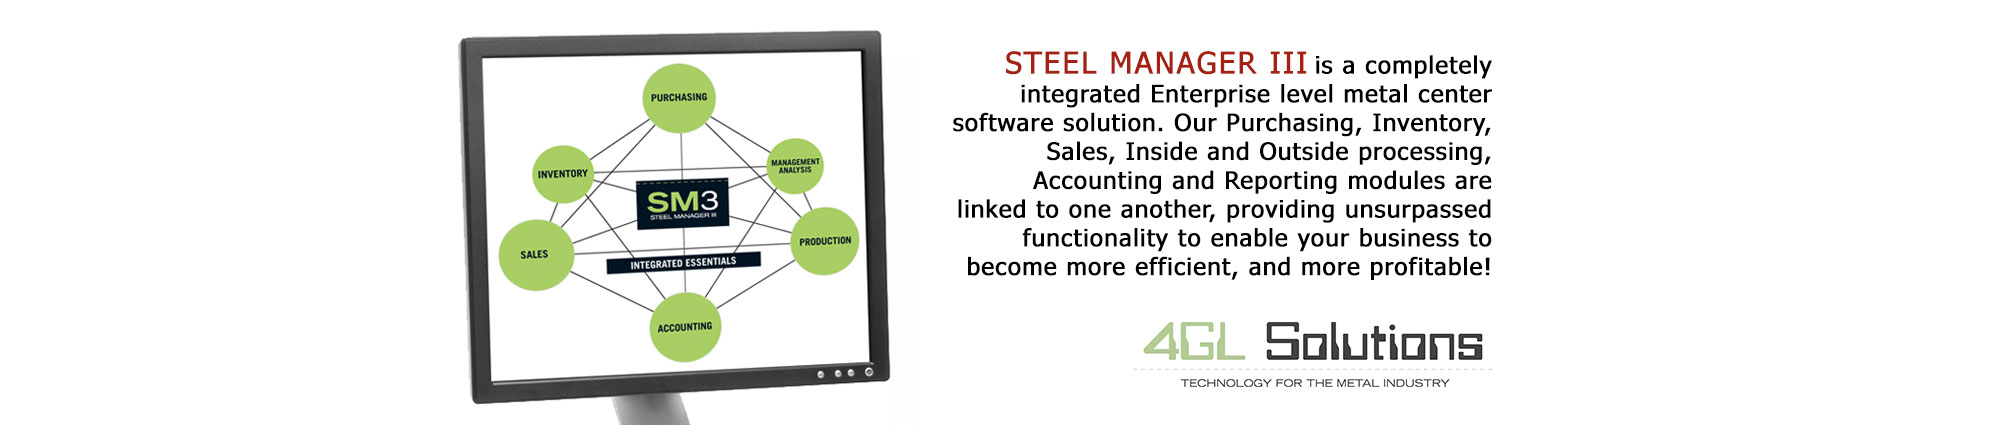 Steel Manager III Slide